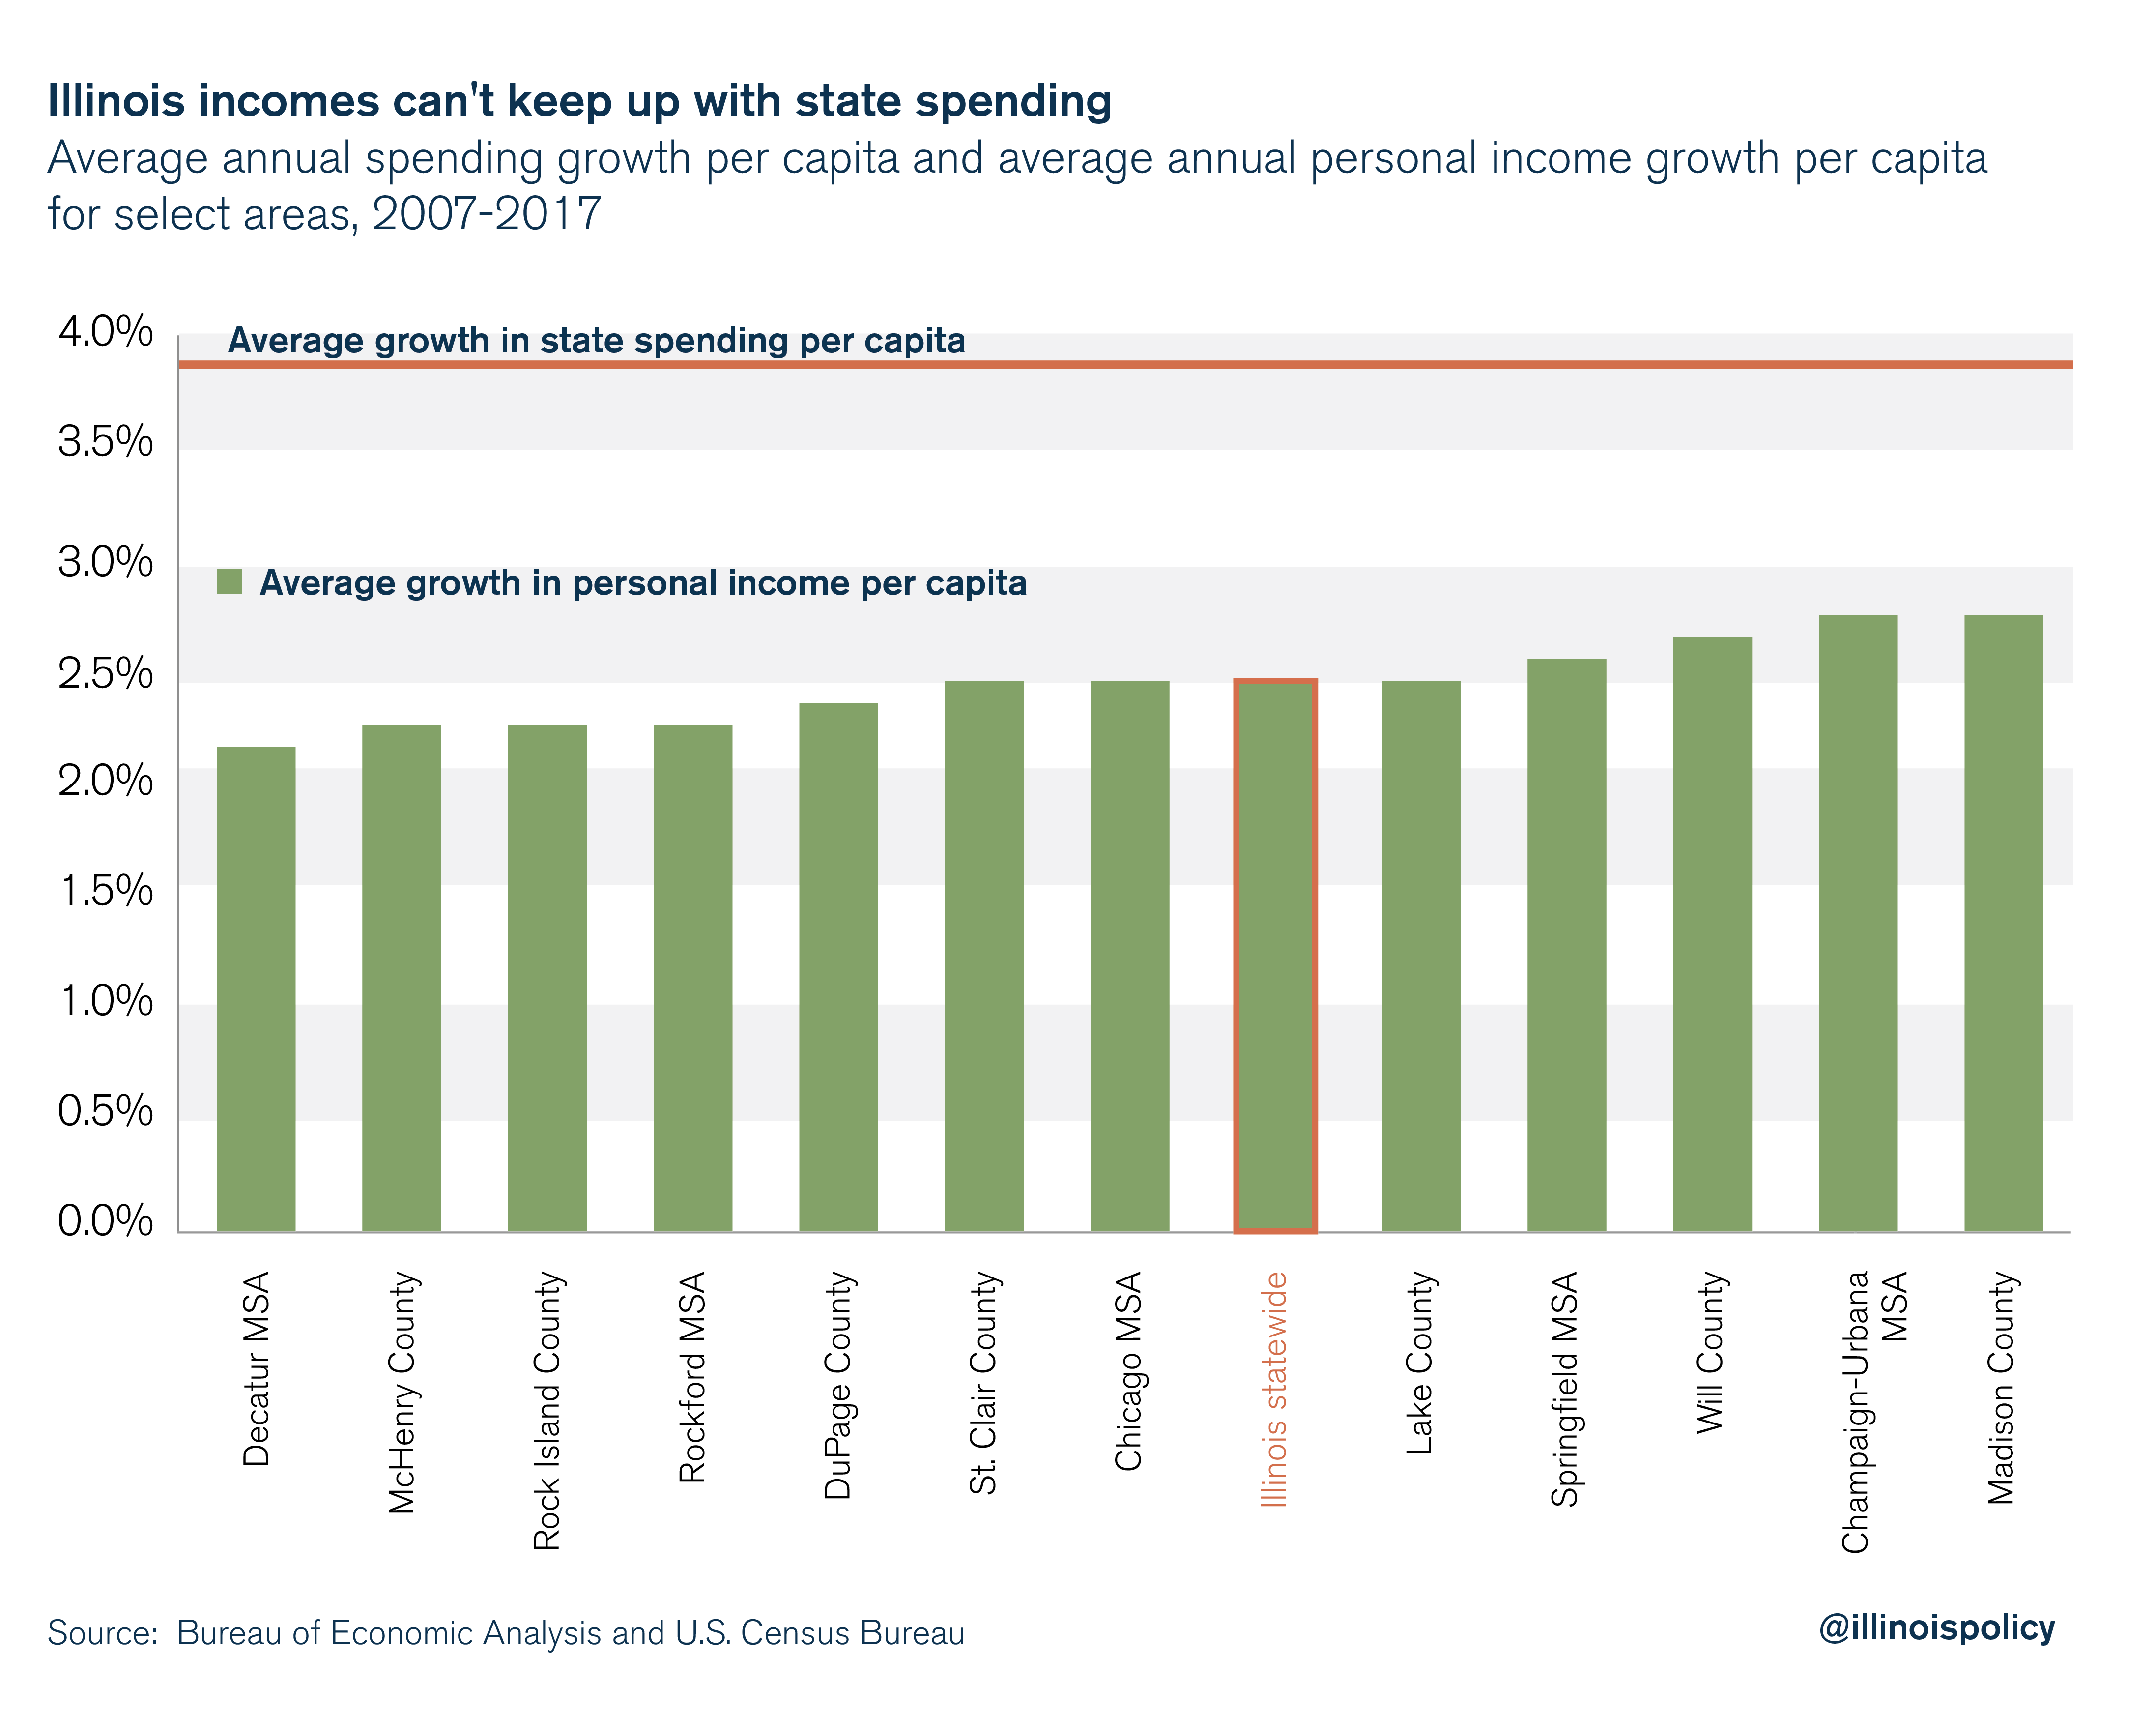 Illinois incomes can't keep up with state spending